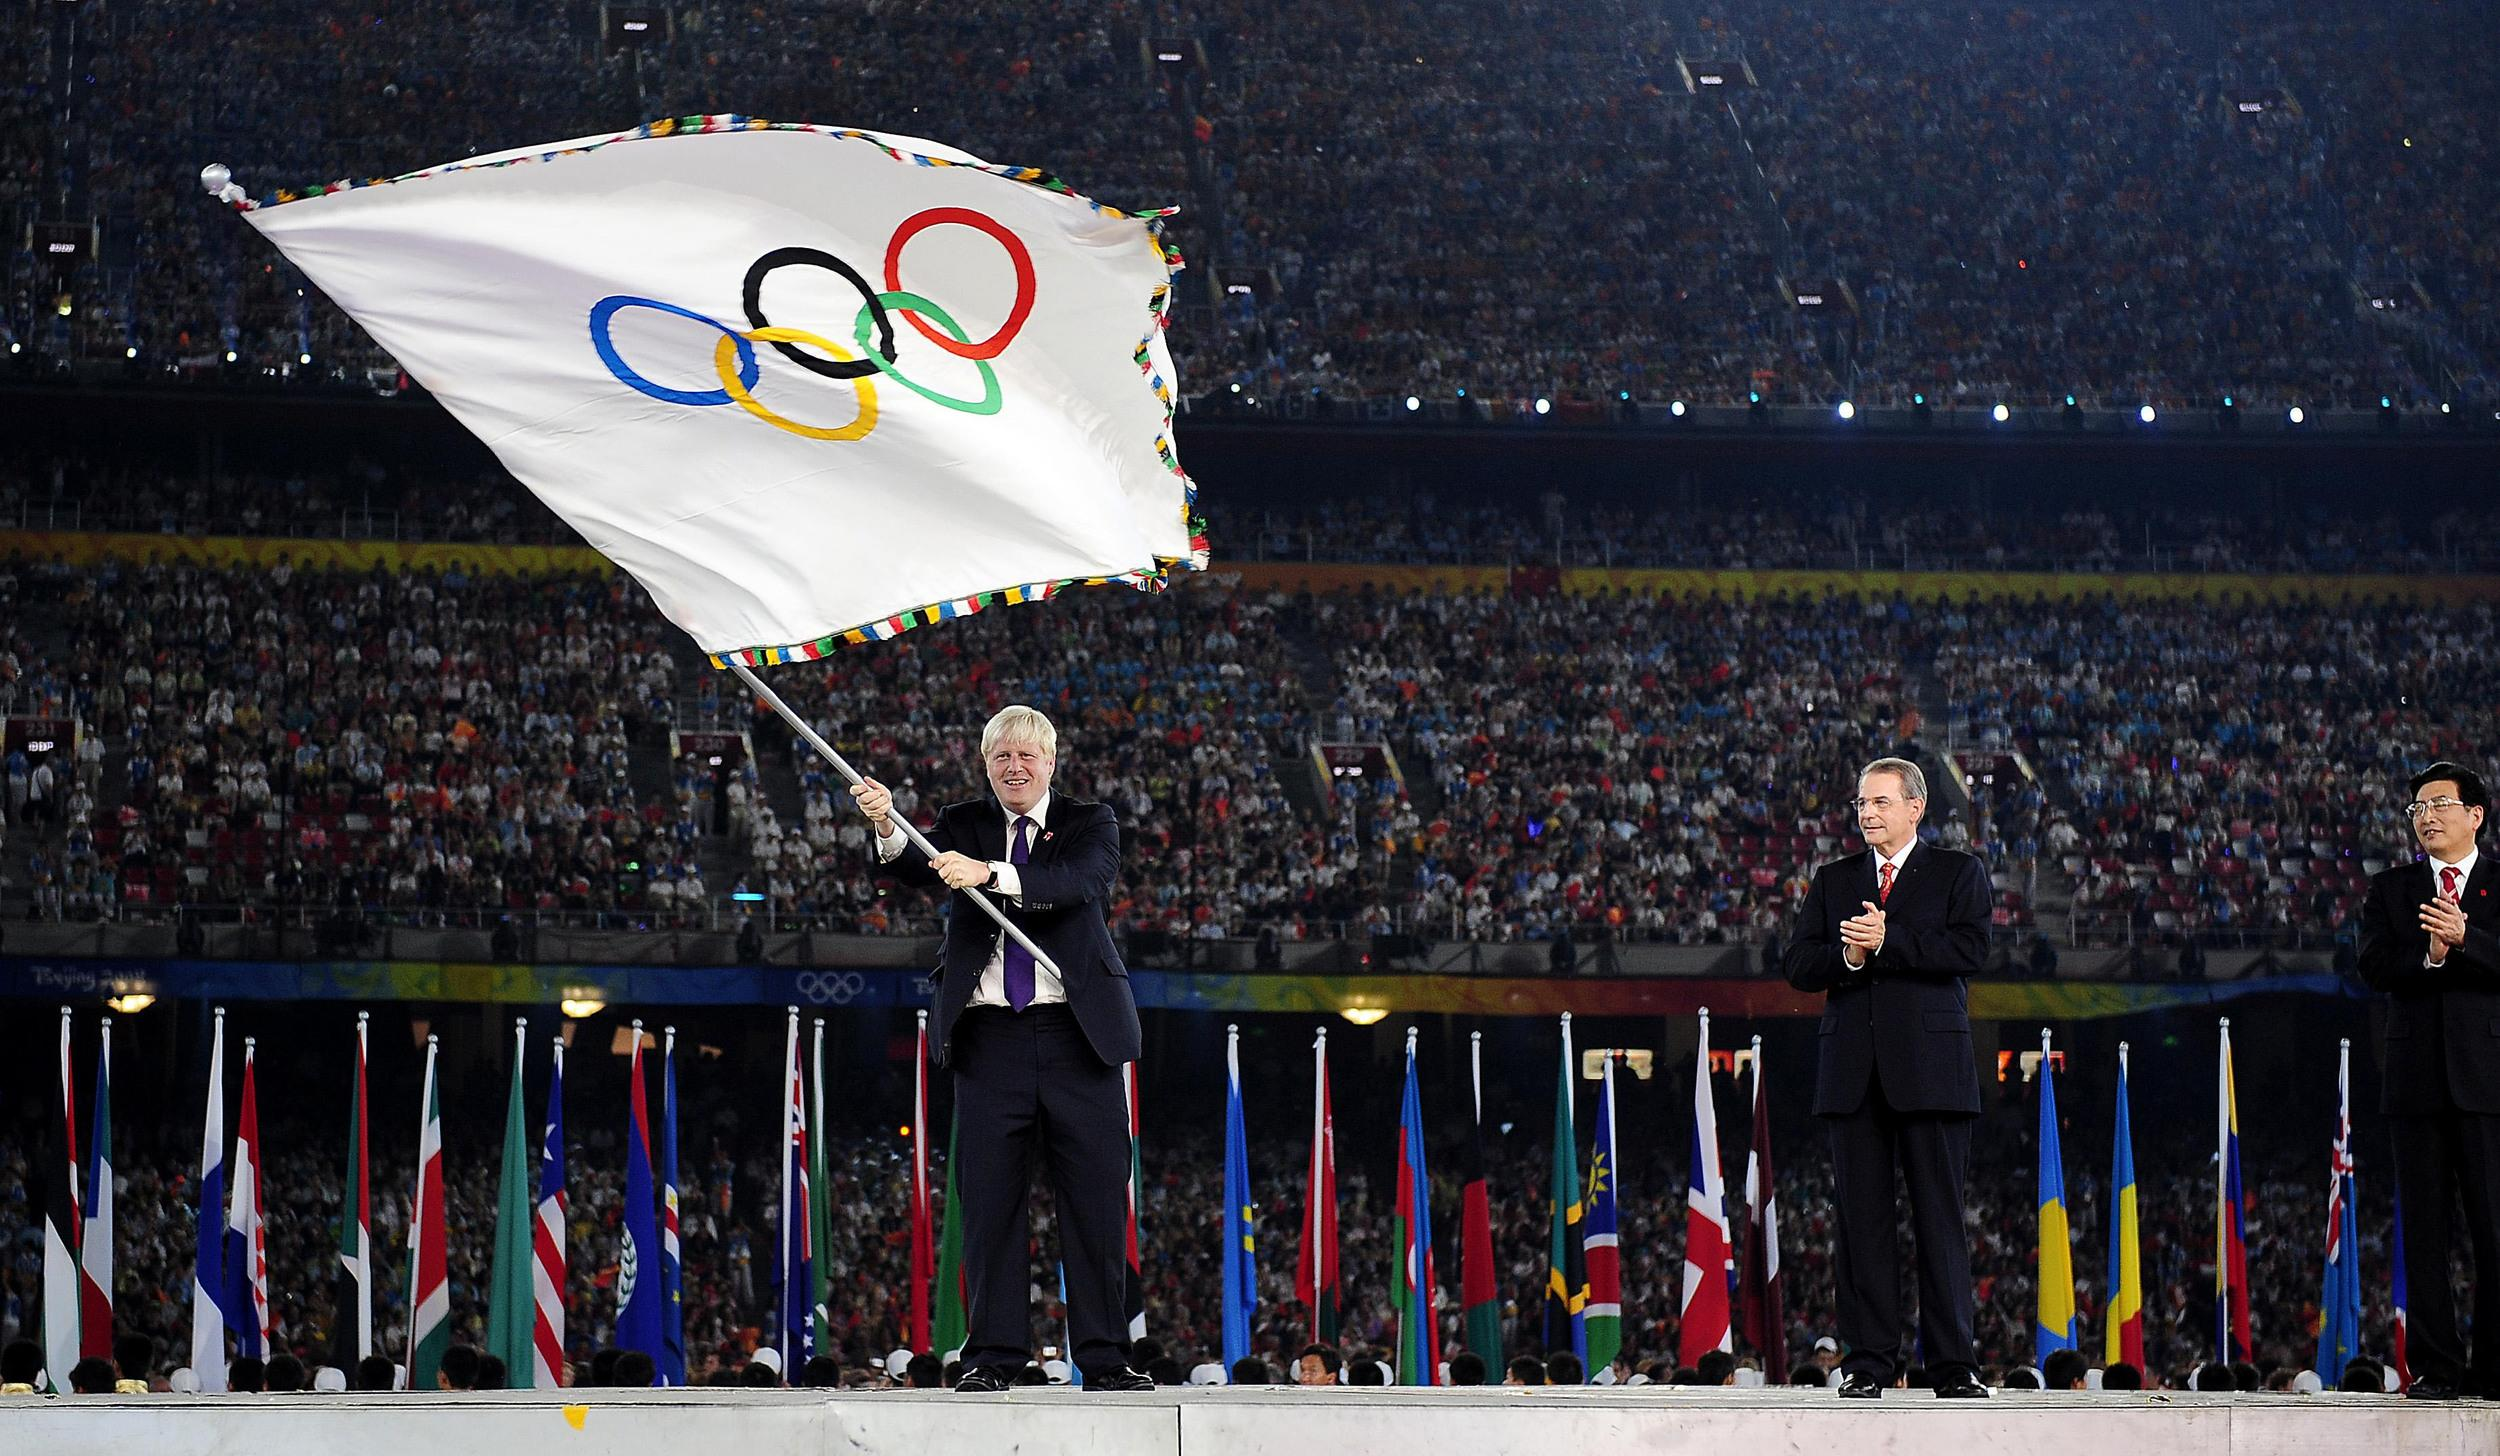 Mayor of London Boris Johnson waves the Olympic Flag during the handover ceremony as President of IOC Jacques Rogge (centre) and Mayor of Beijing Guo Jinlong look on at the National Stadium during the 2008 Beijing Olympic Games, China.